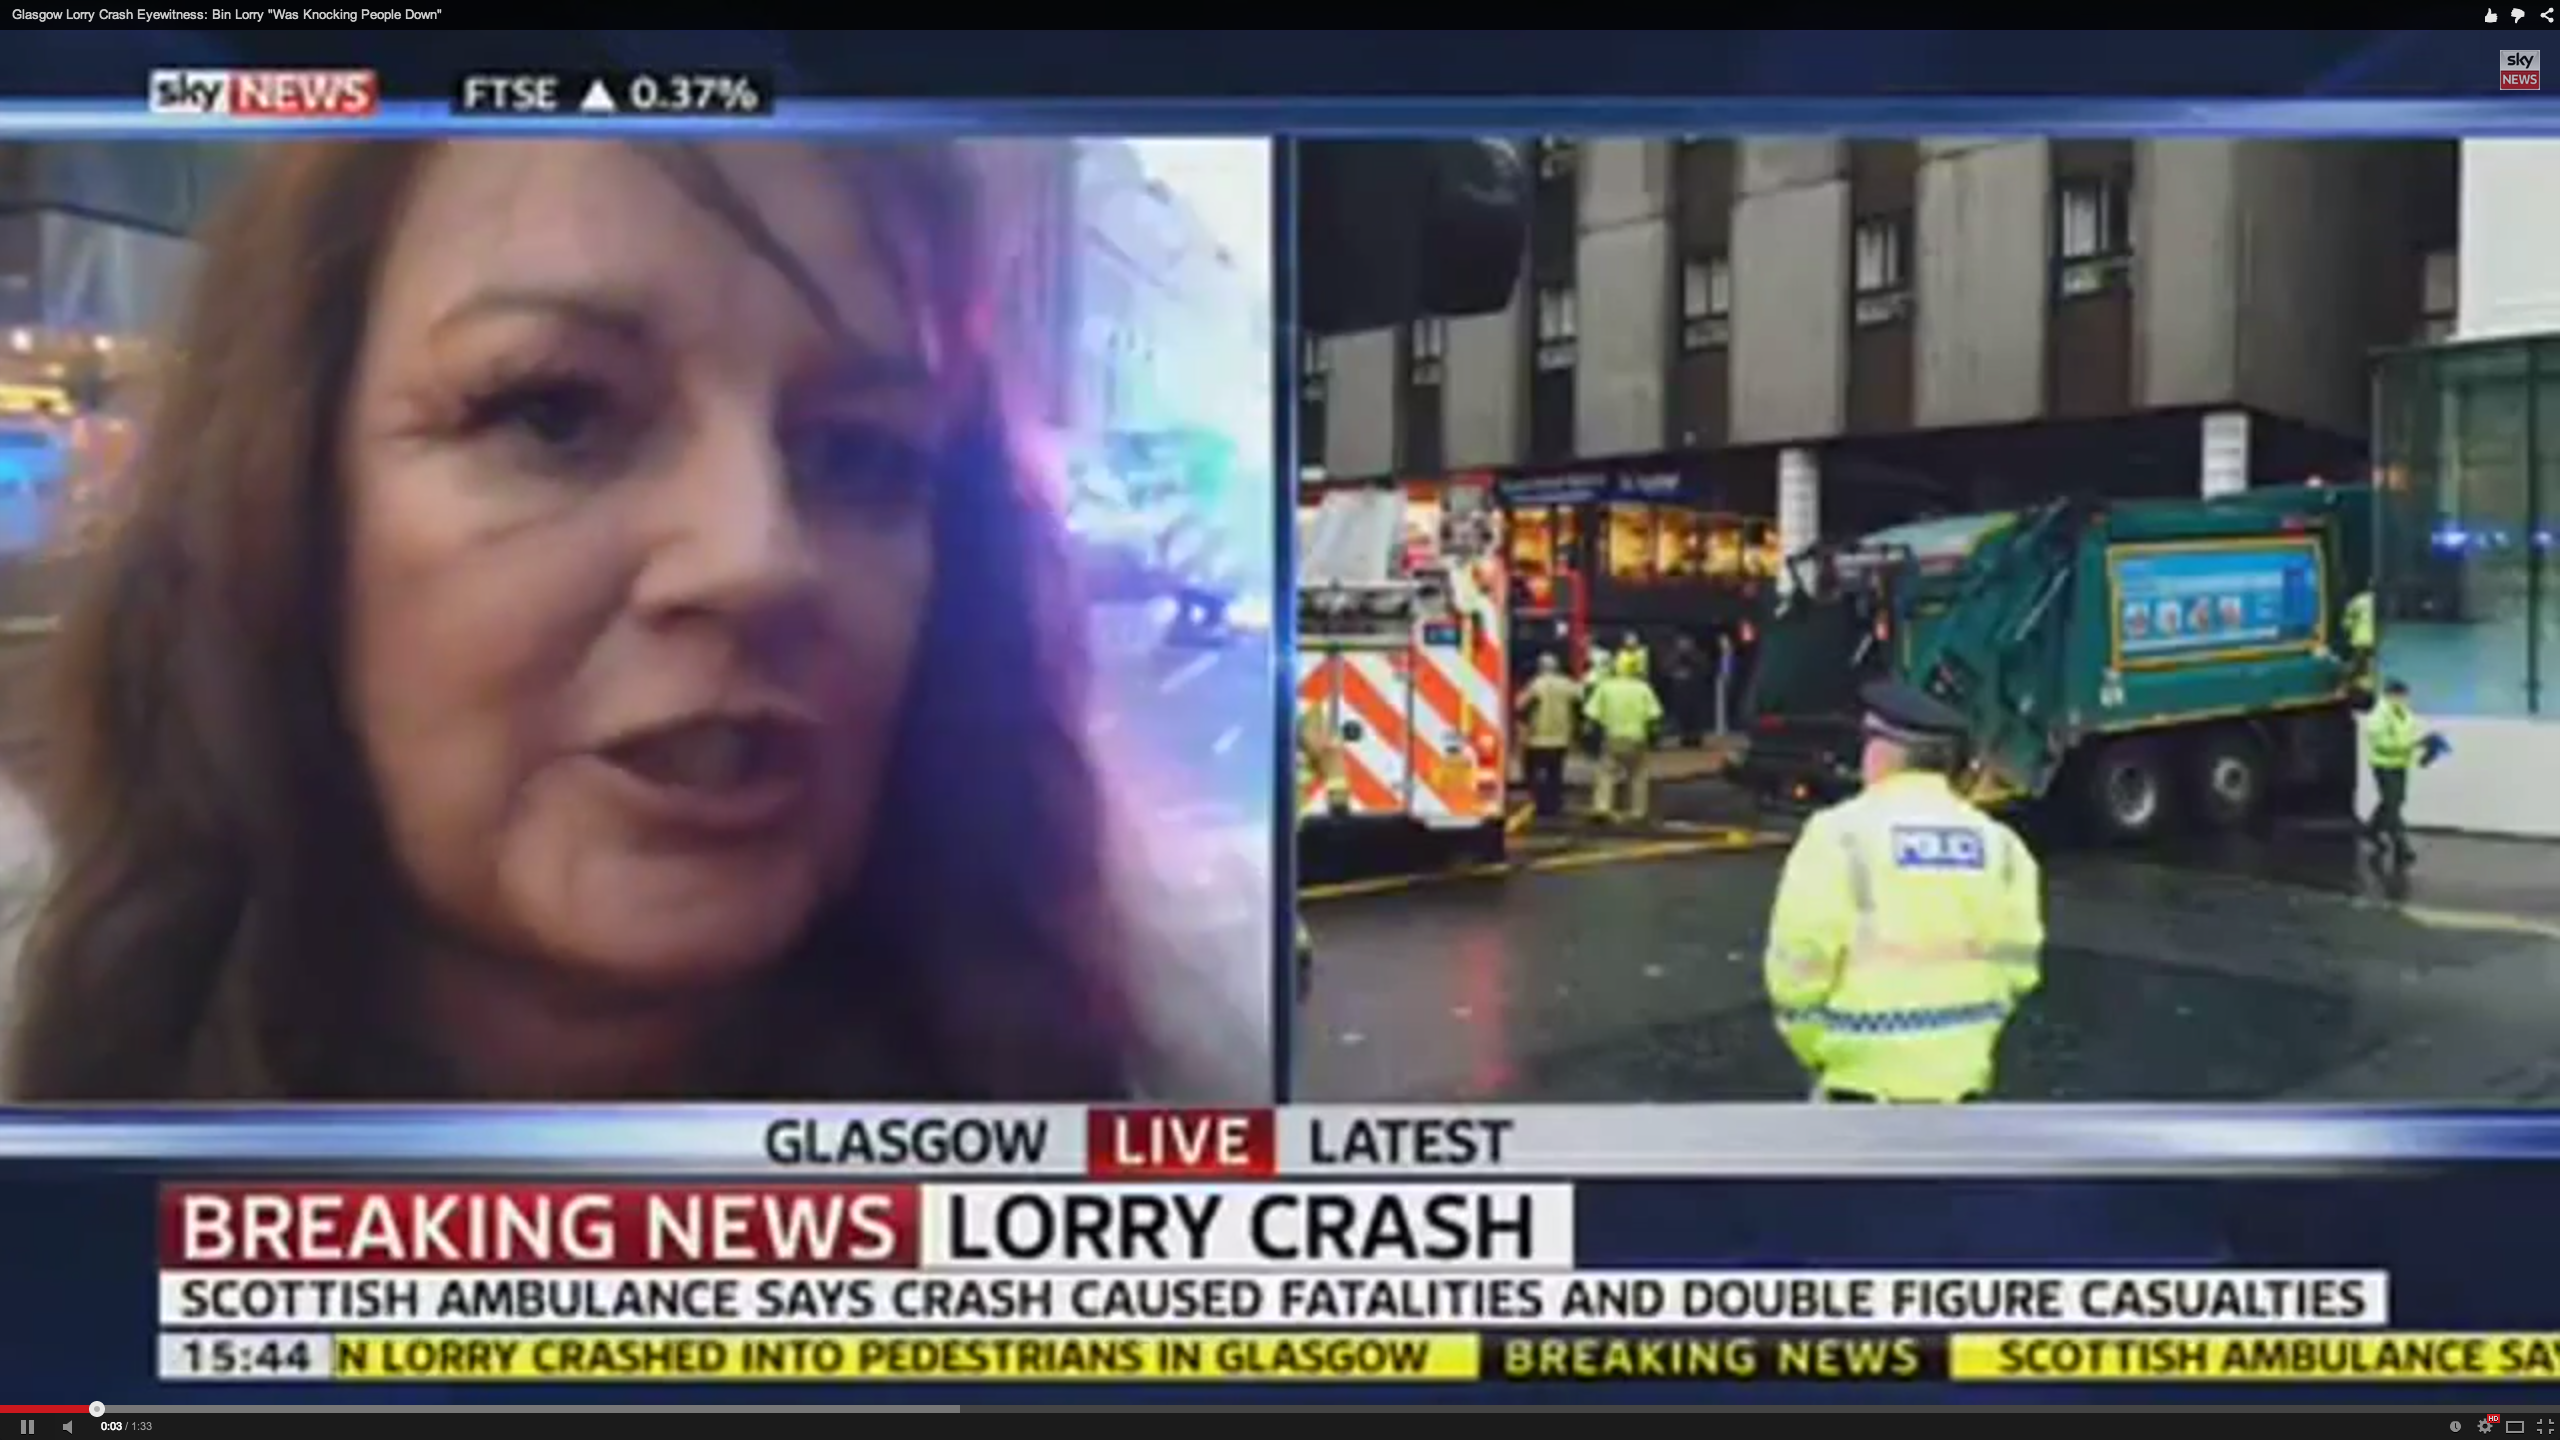 Eyewitness tells Sky News of the moment the lorry crashed